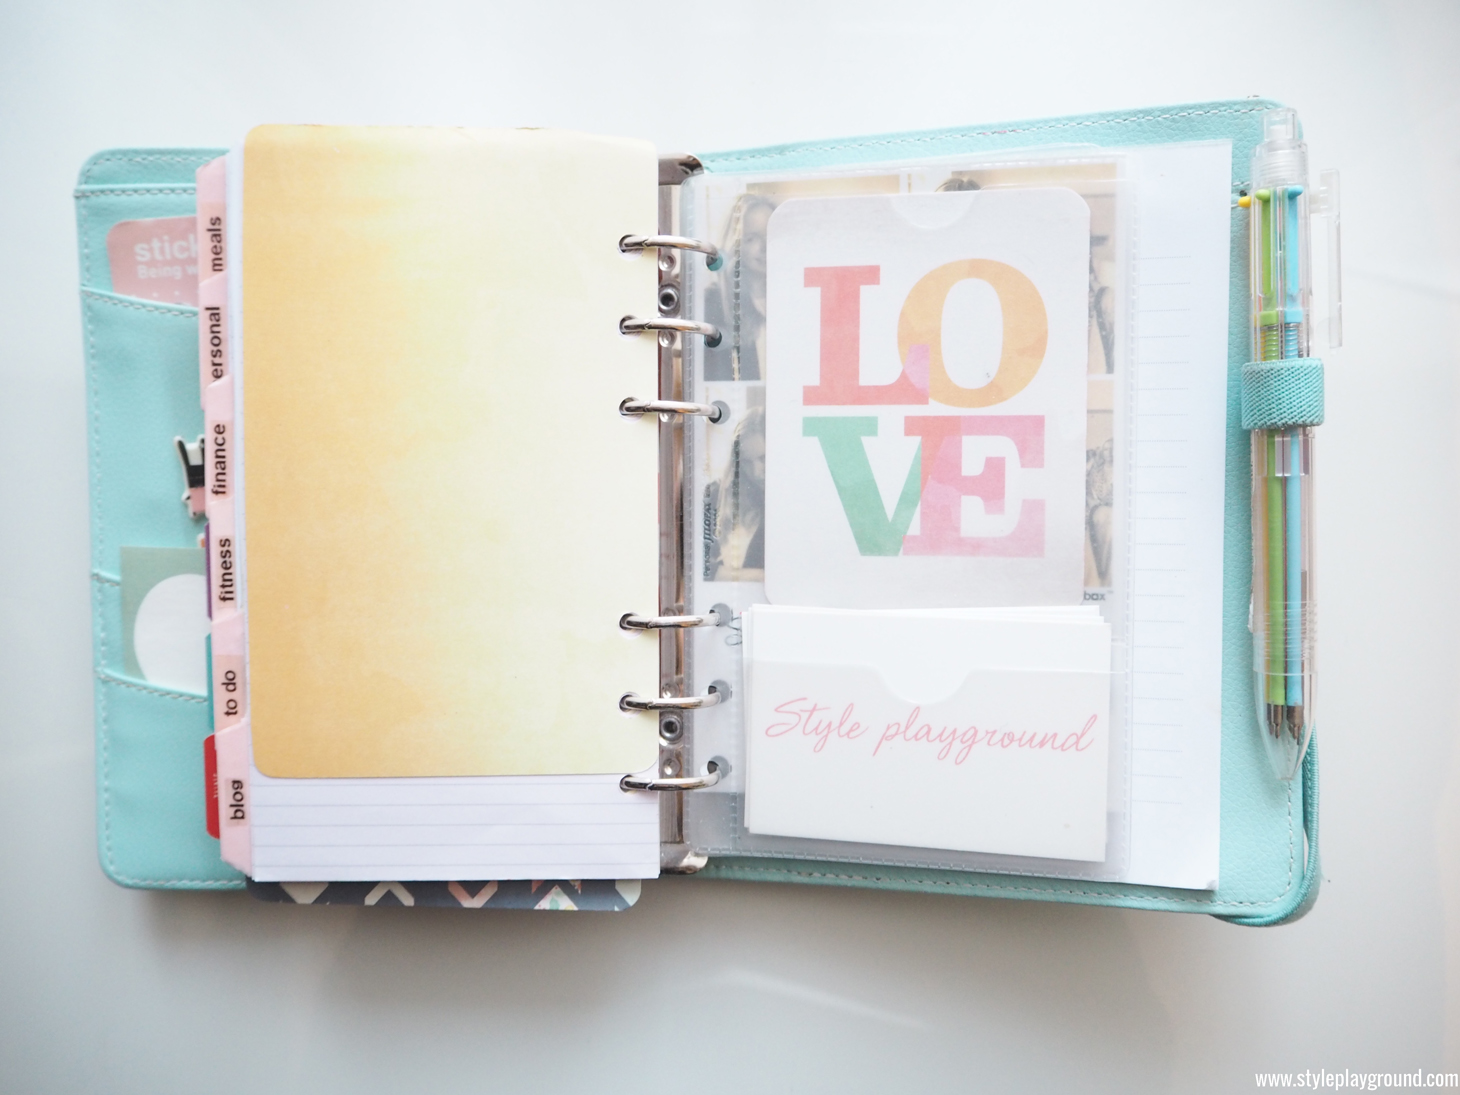 Axelle Blanpain of Style playground shares what's inside her Kikki K planner